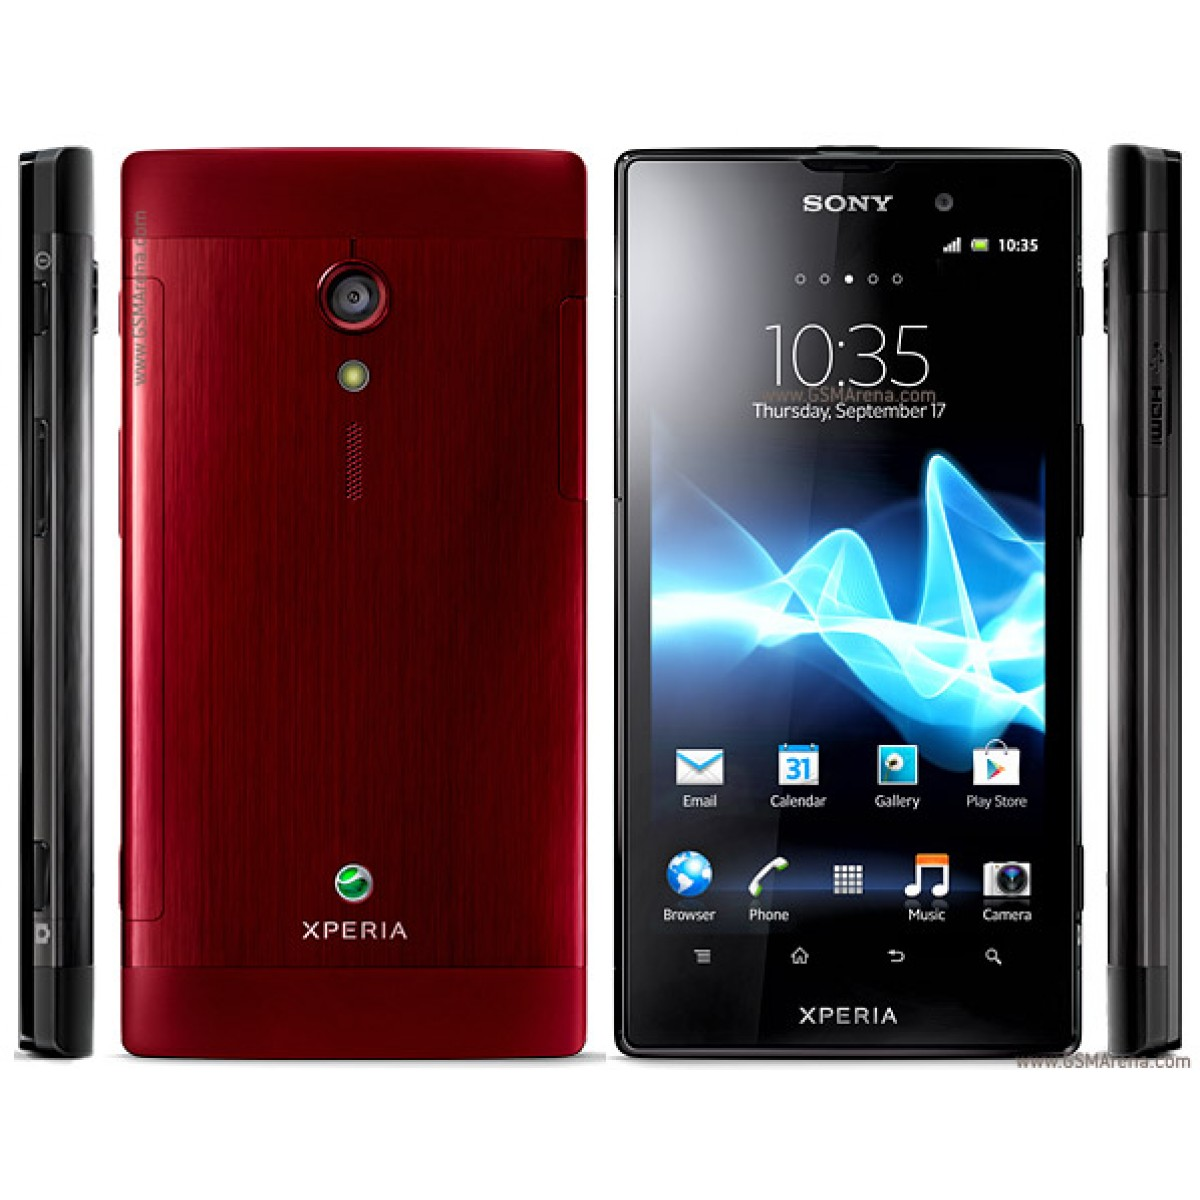 sony xperia ion android touchscreen 1000s new mobile